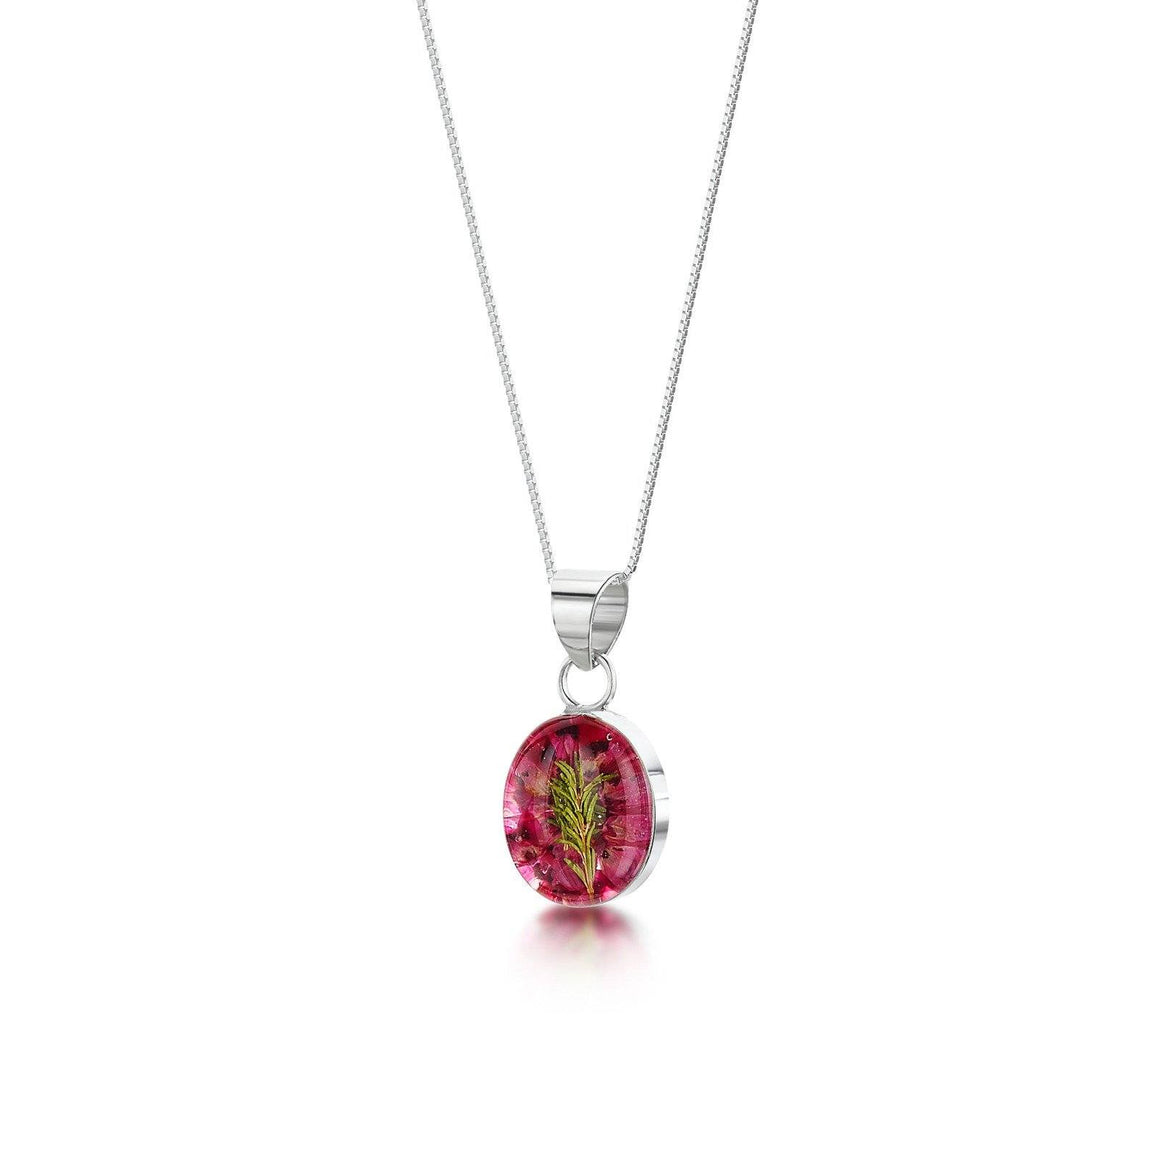 Real Flower Heather Pendant